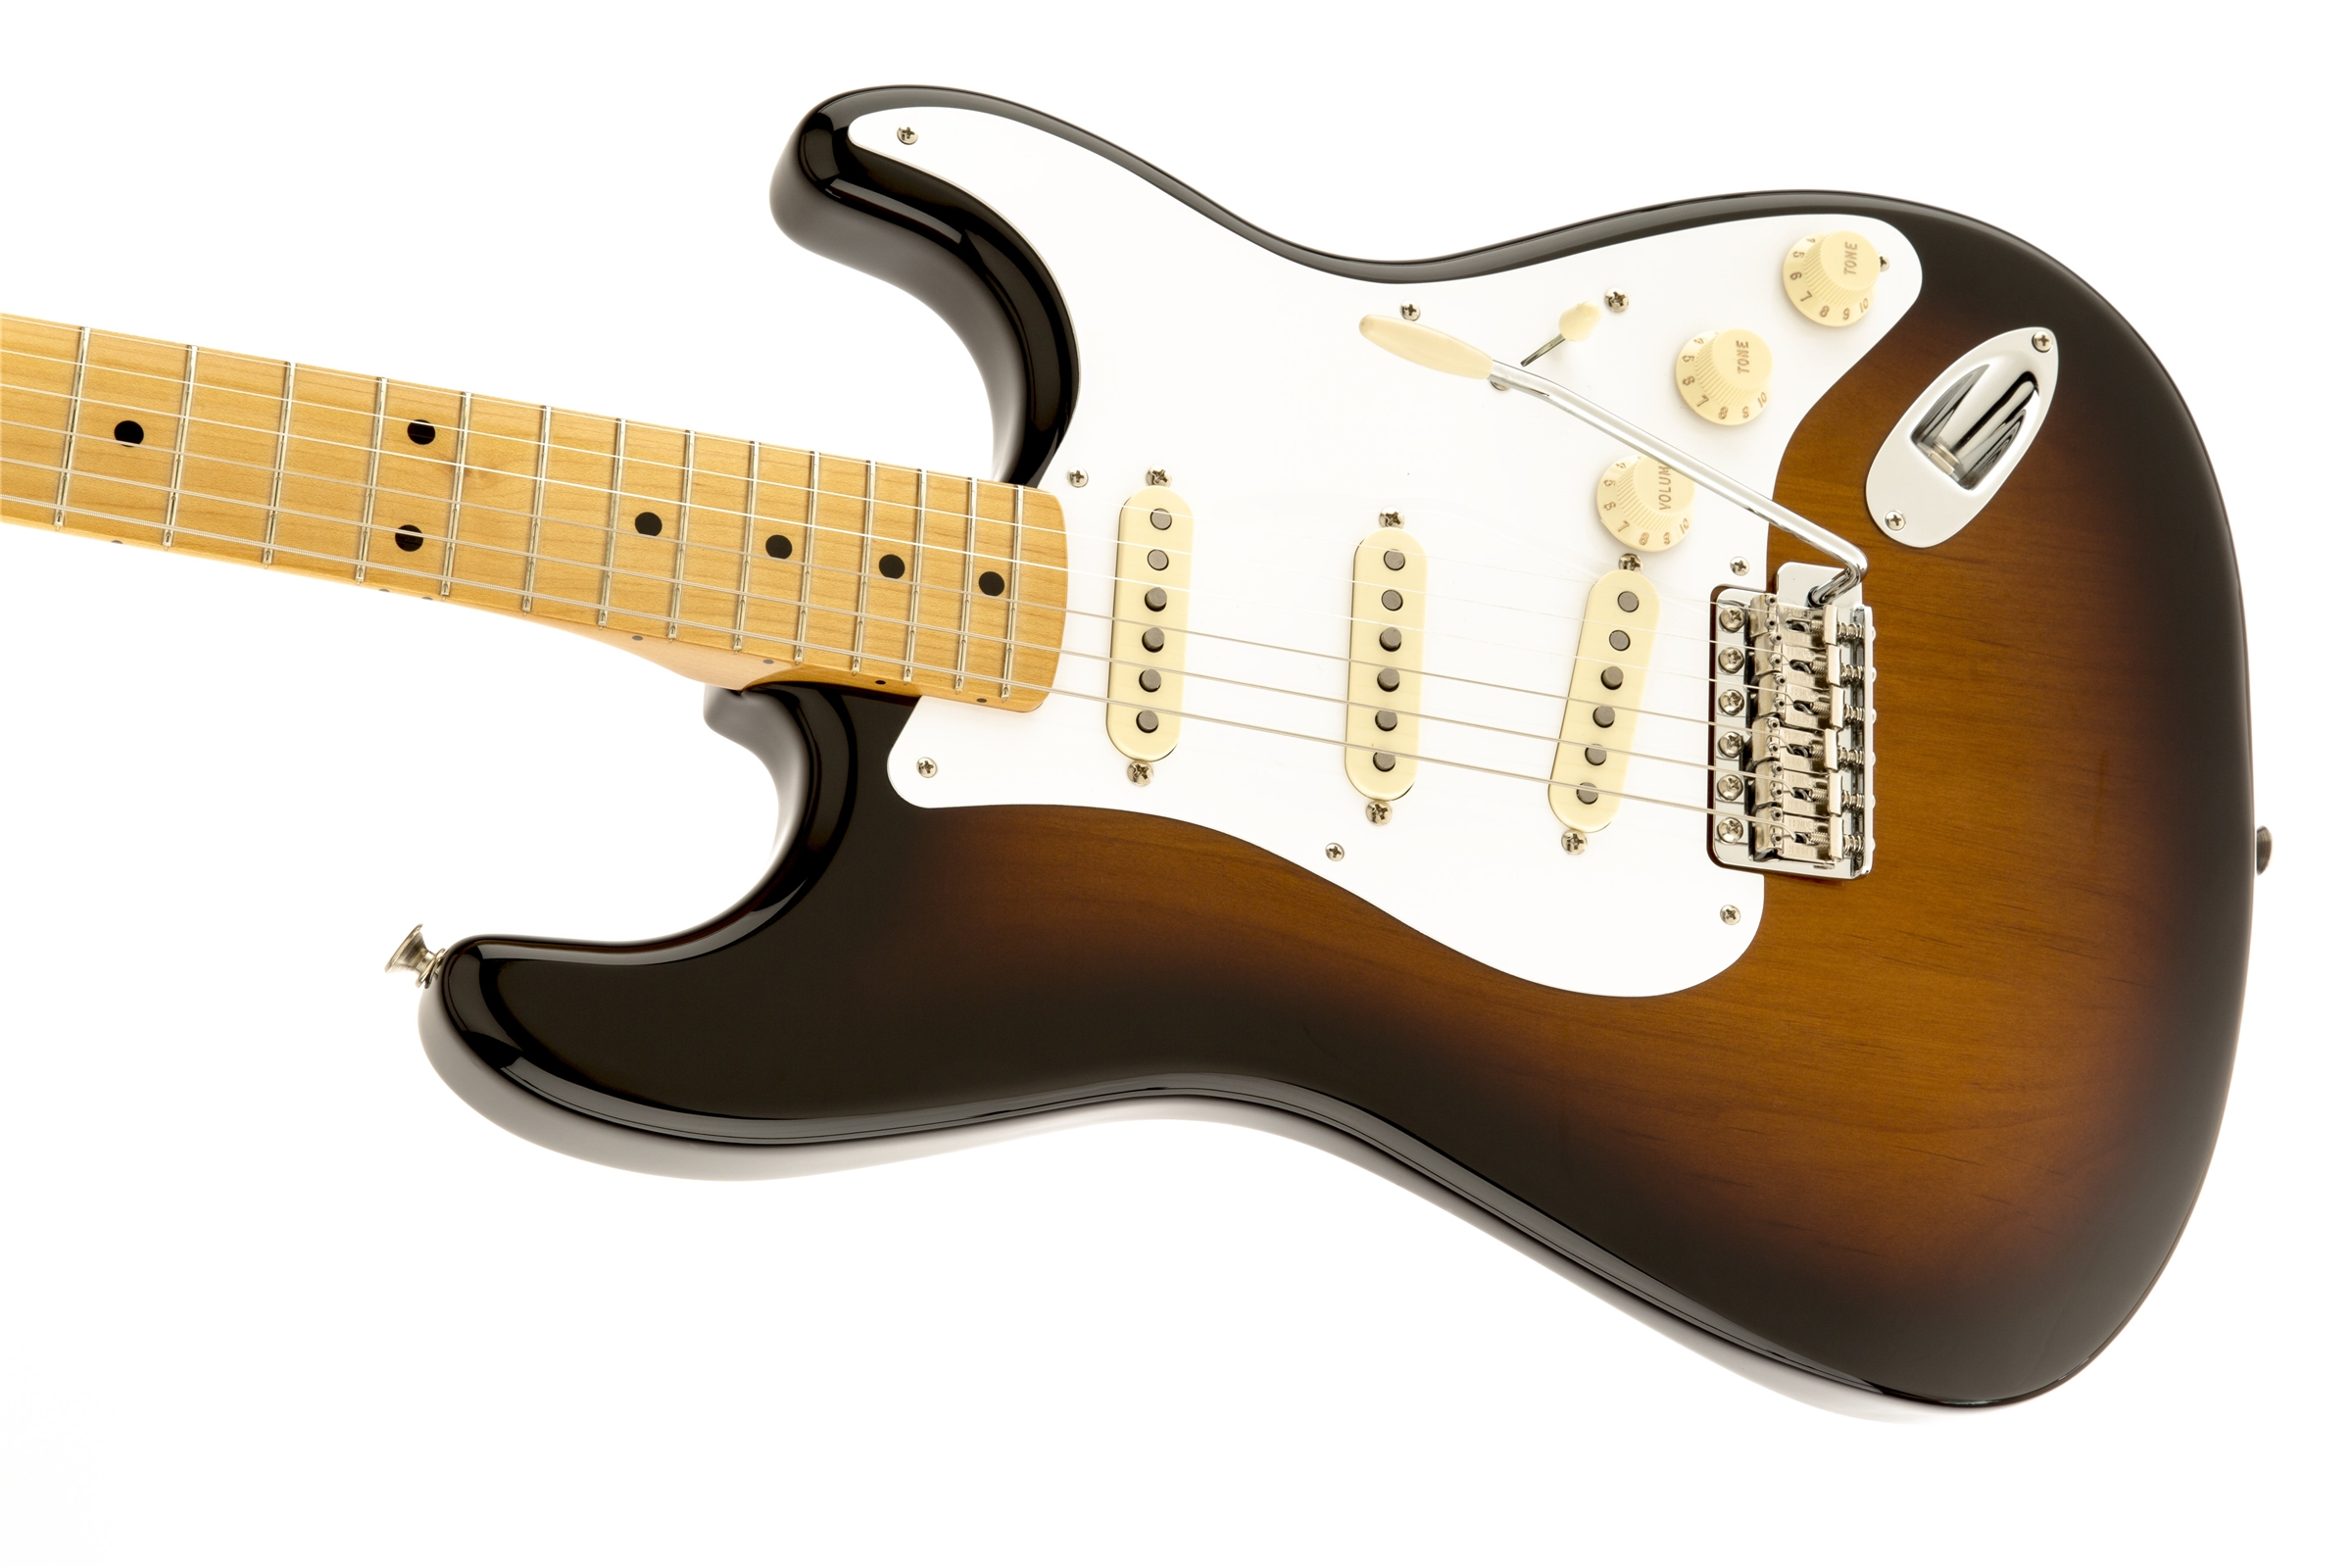 0131002303_gtr_cntbdyleft_001_nr classic series '50s stratocaster� fender electric guitars  at gsmportal.co